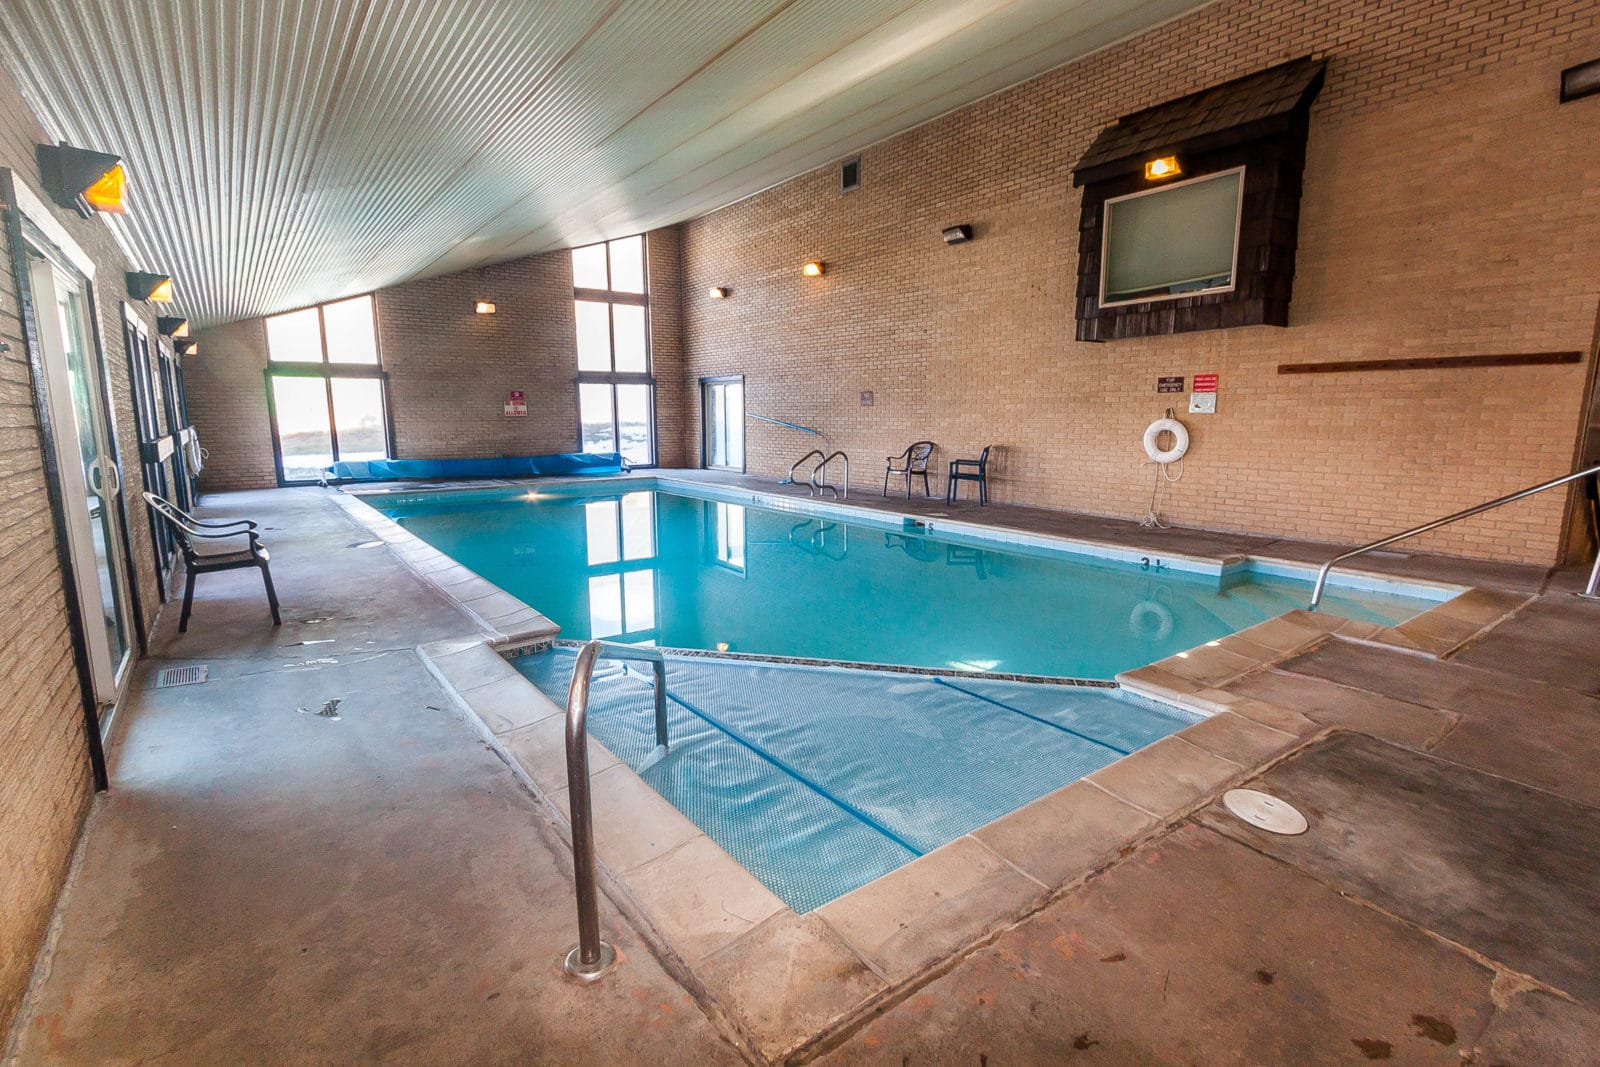 Shared Pool at Dillon Valley West condos.